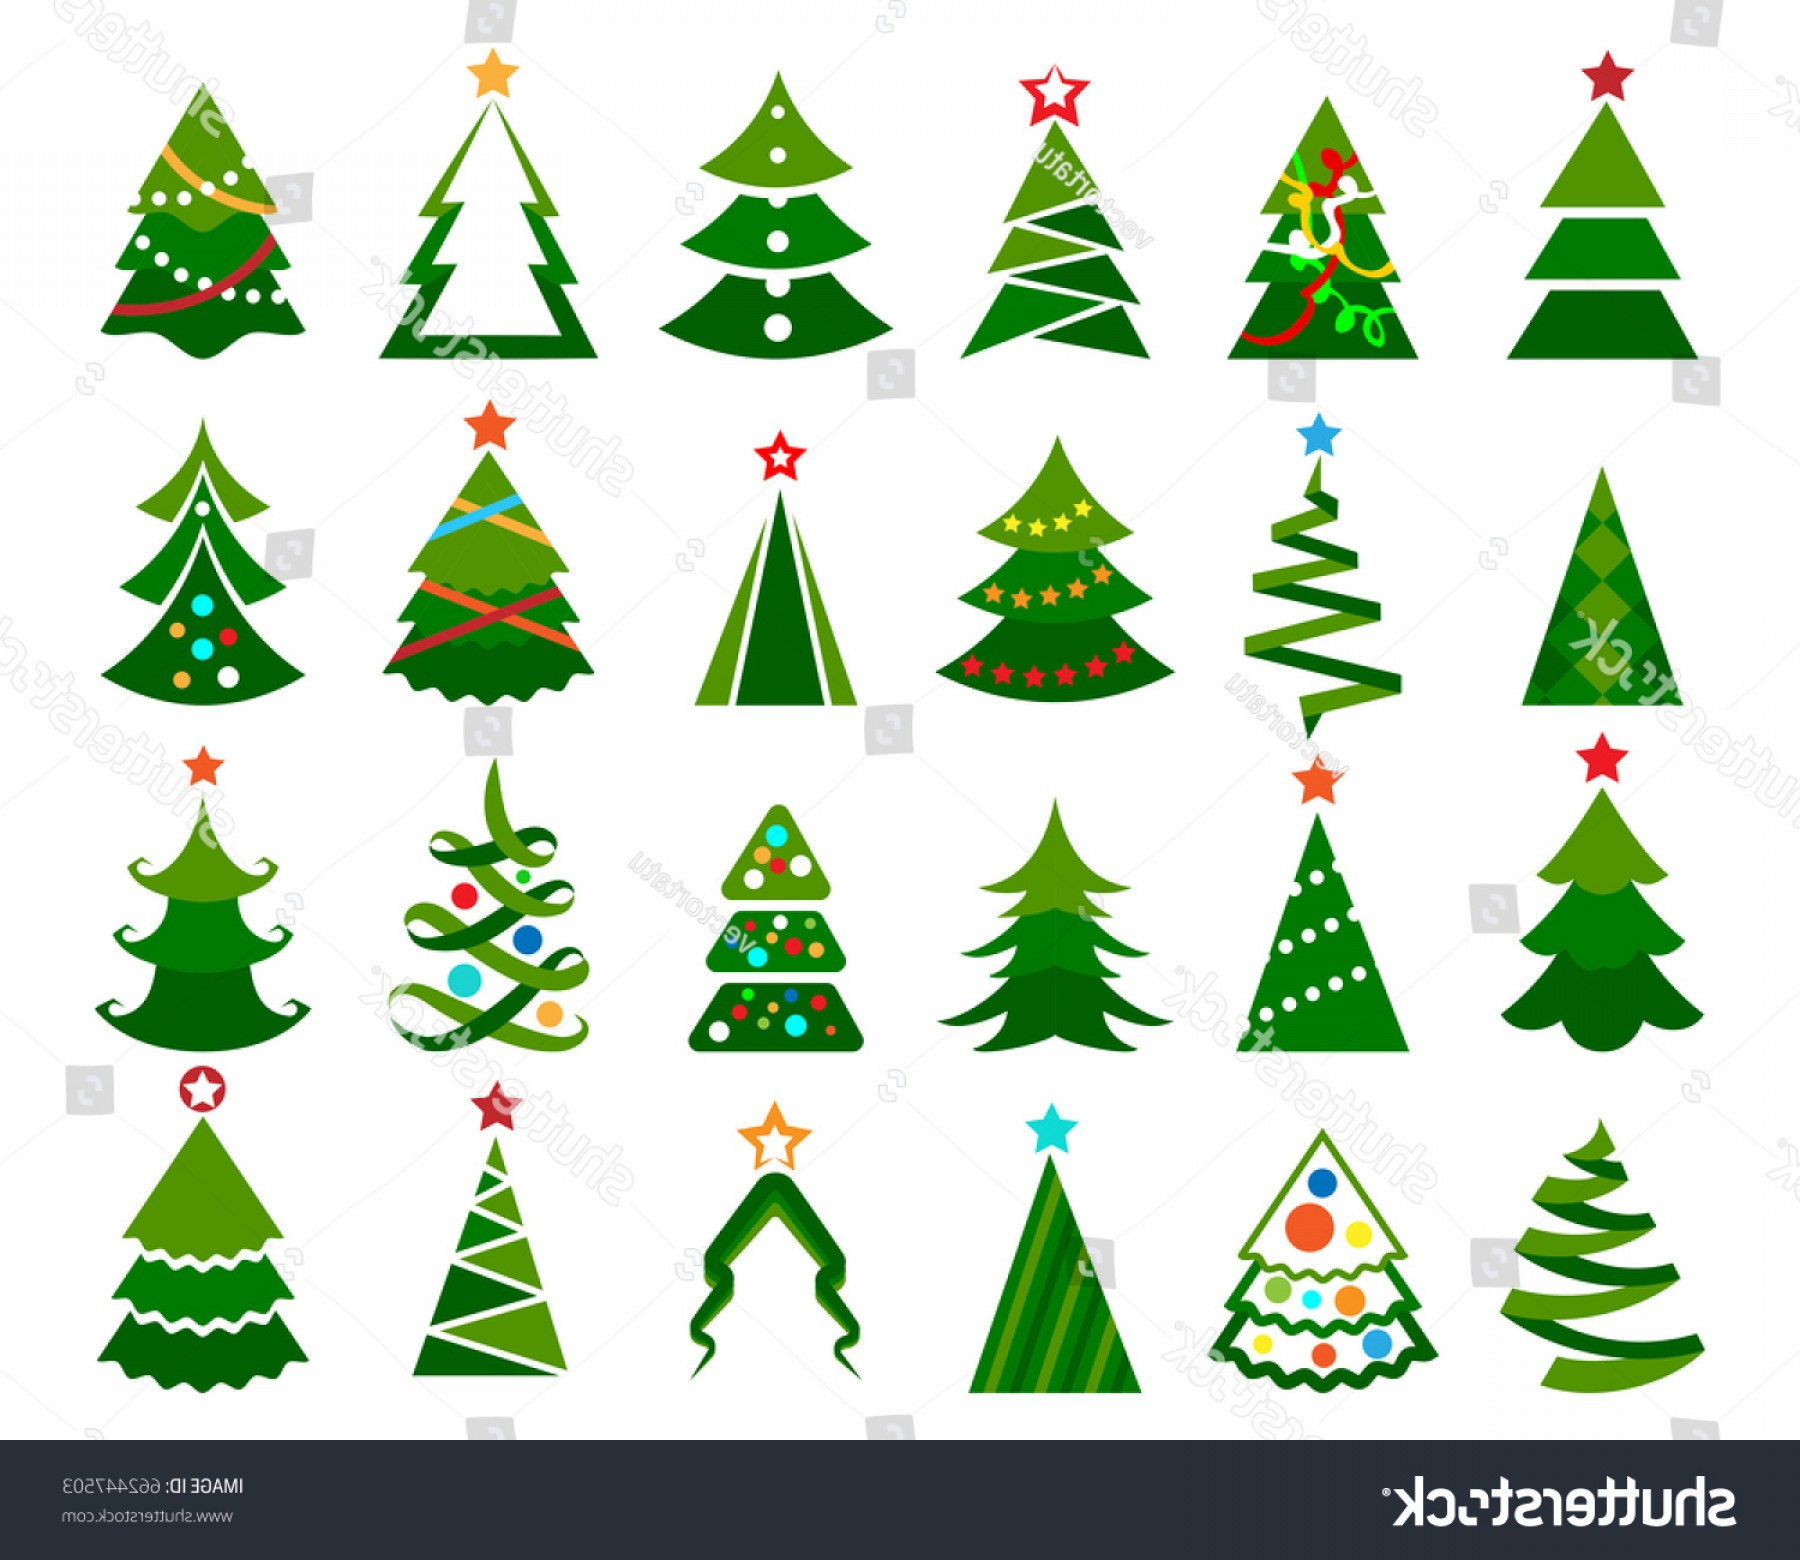 Christmas Tree Art Large Vector Format: Christmas Tree Vector Set Cartoon Colored